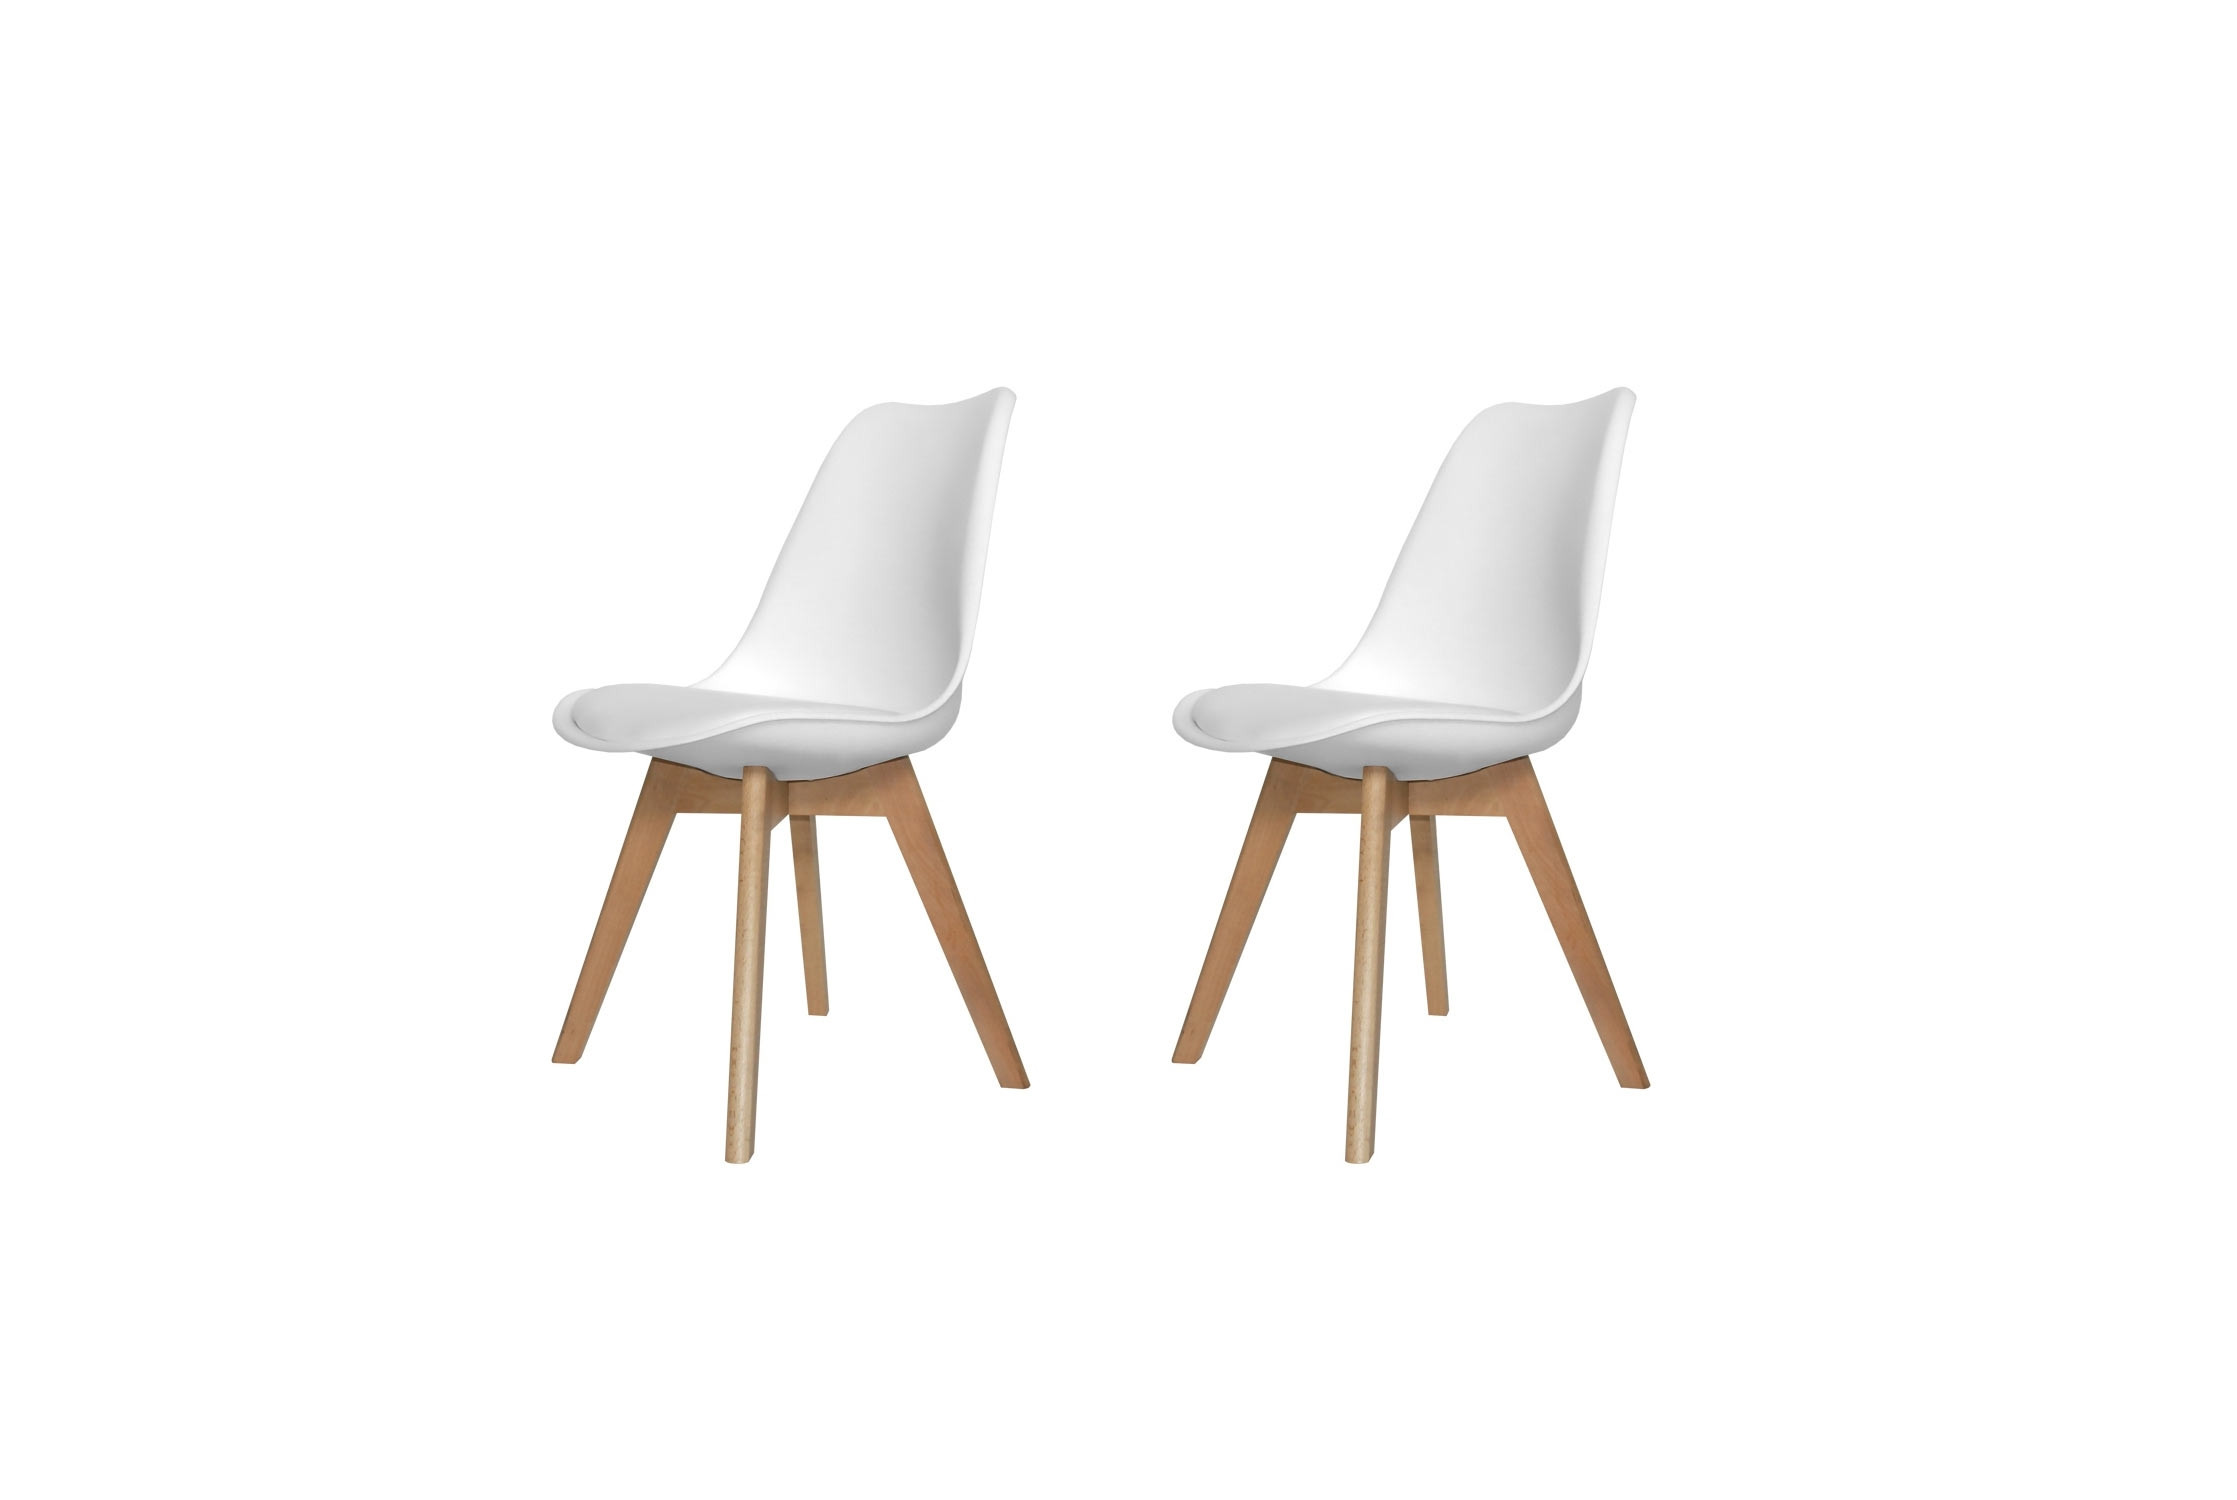 PACK 2 SILLAS NEW TOWER WOOD BLANCAS